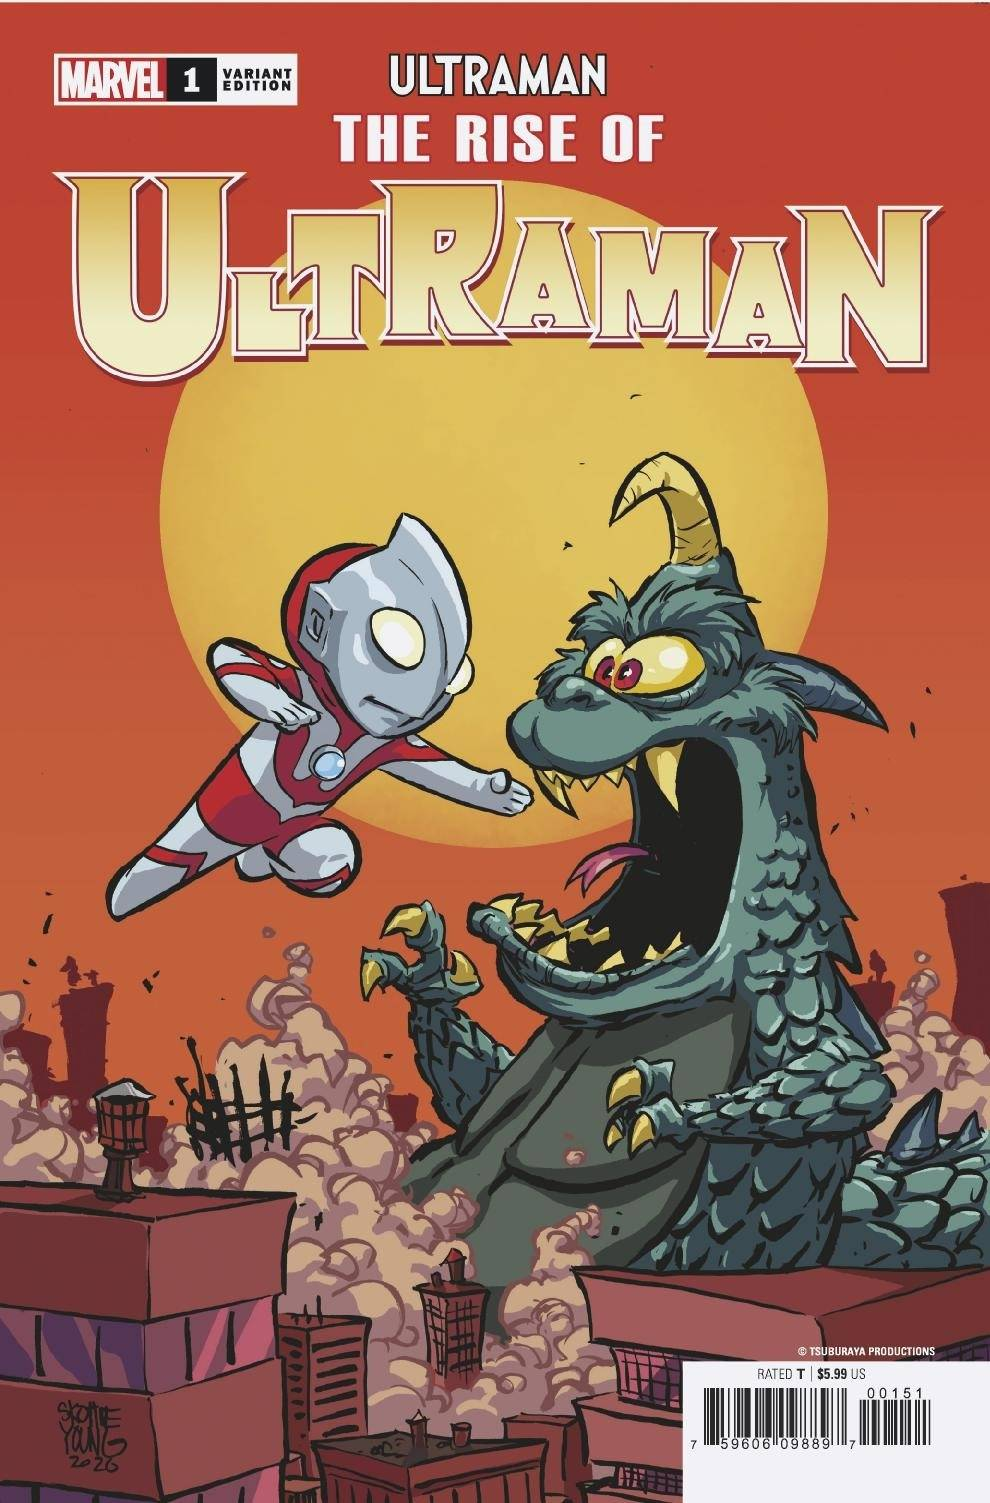 RISE OF ULTRAMAN #1 COIPEL SPIDER-MAN VARIANT 9//9//20 FREE SHIPPING AVAILABLE